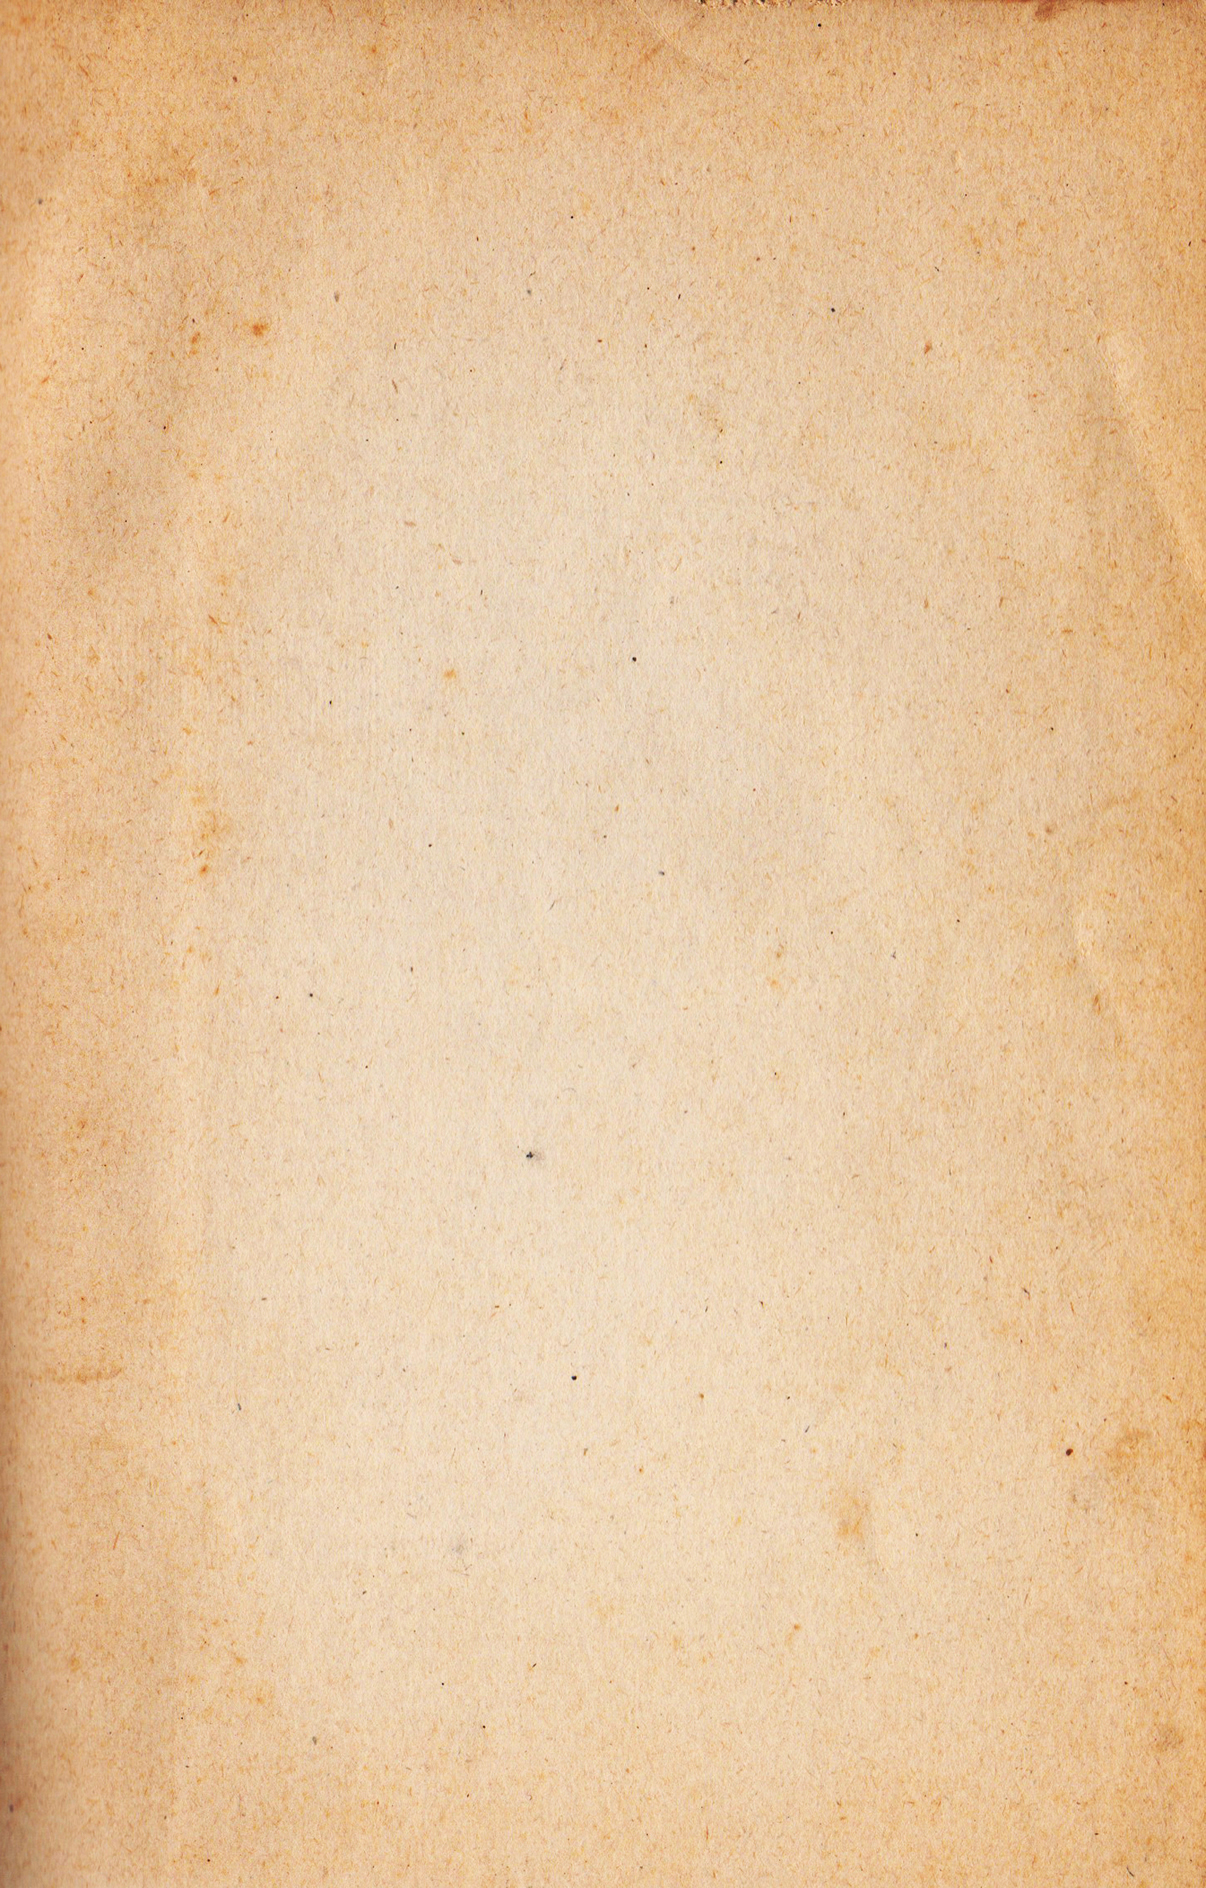 texture paper, paper texture, old battered paper, download photo, image, background, background